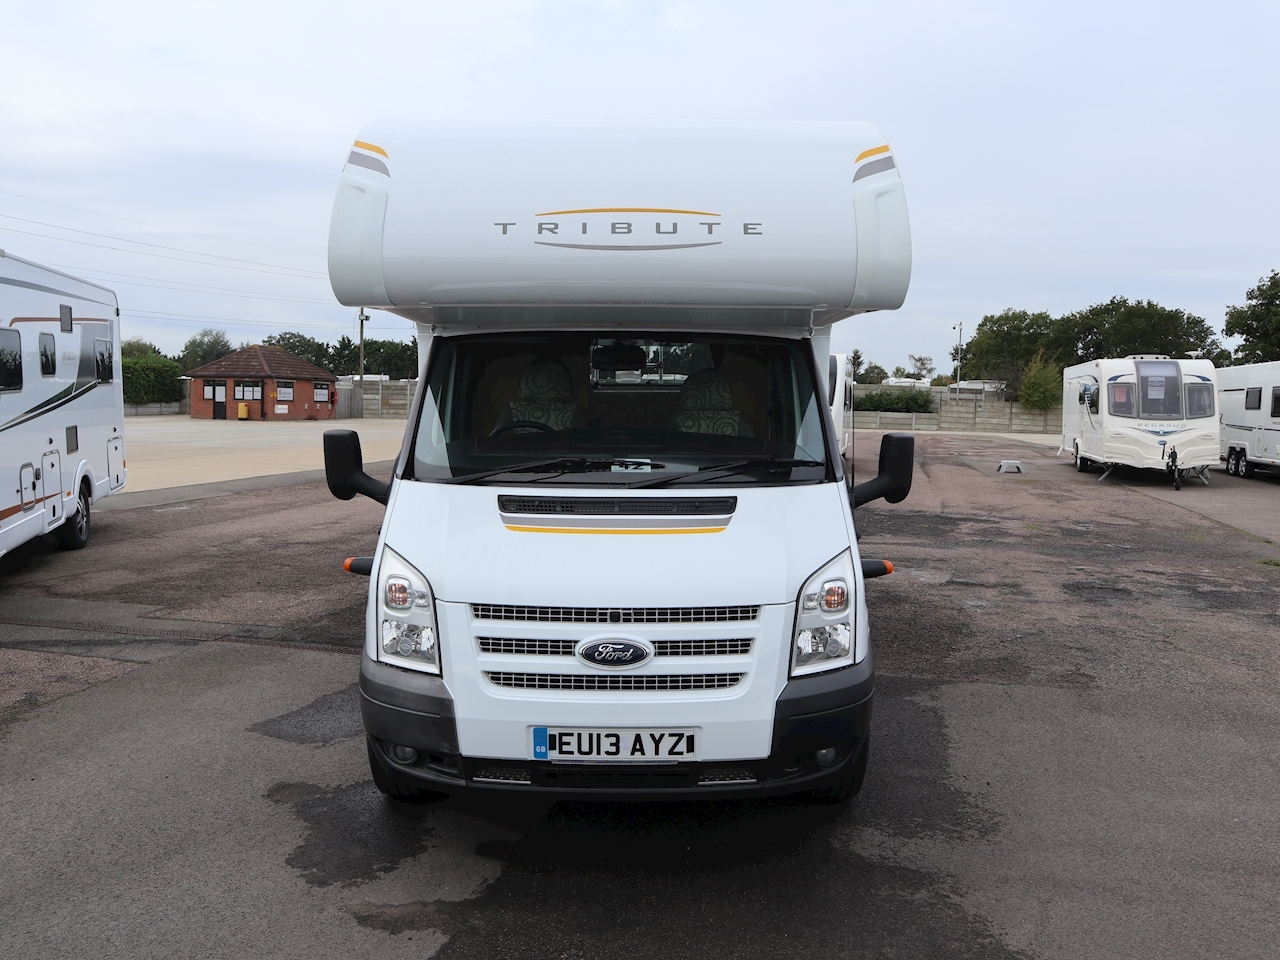 Ford Auto Trail Tribute T 625 - Large 1